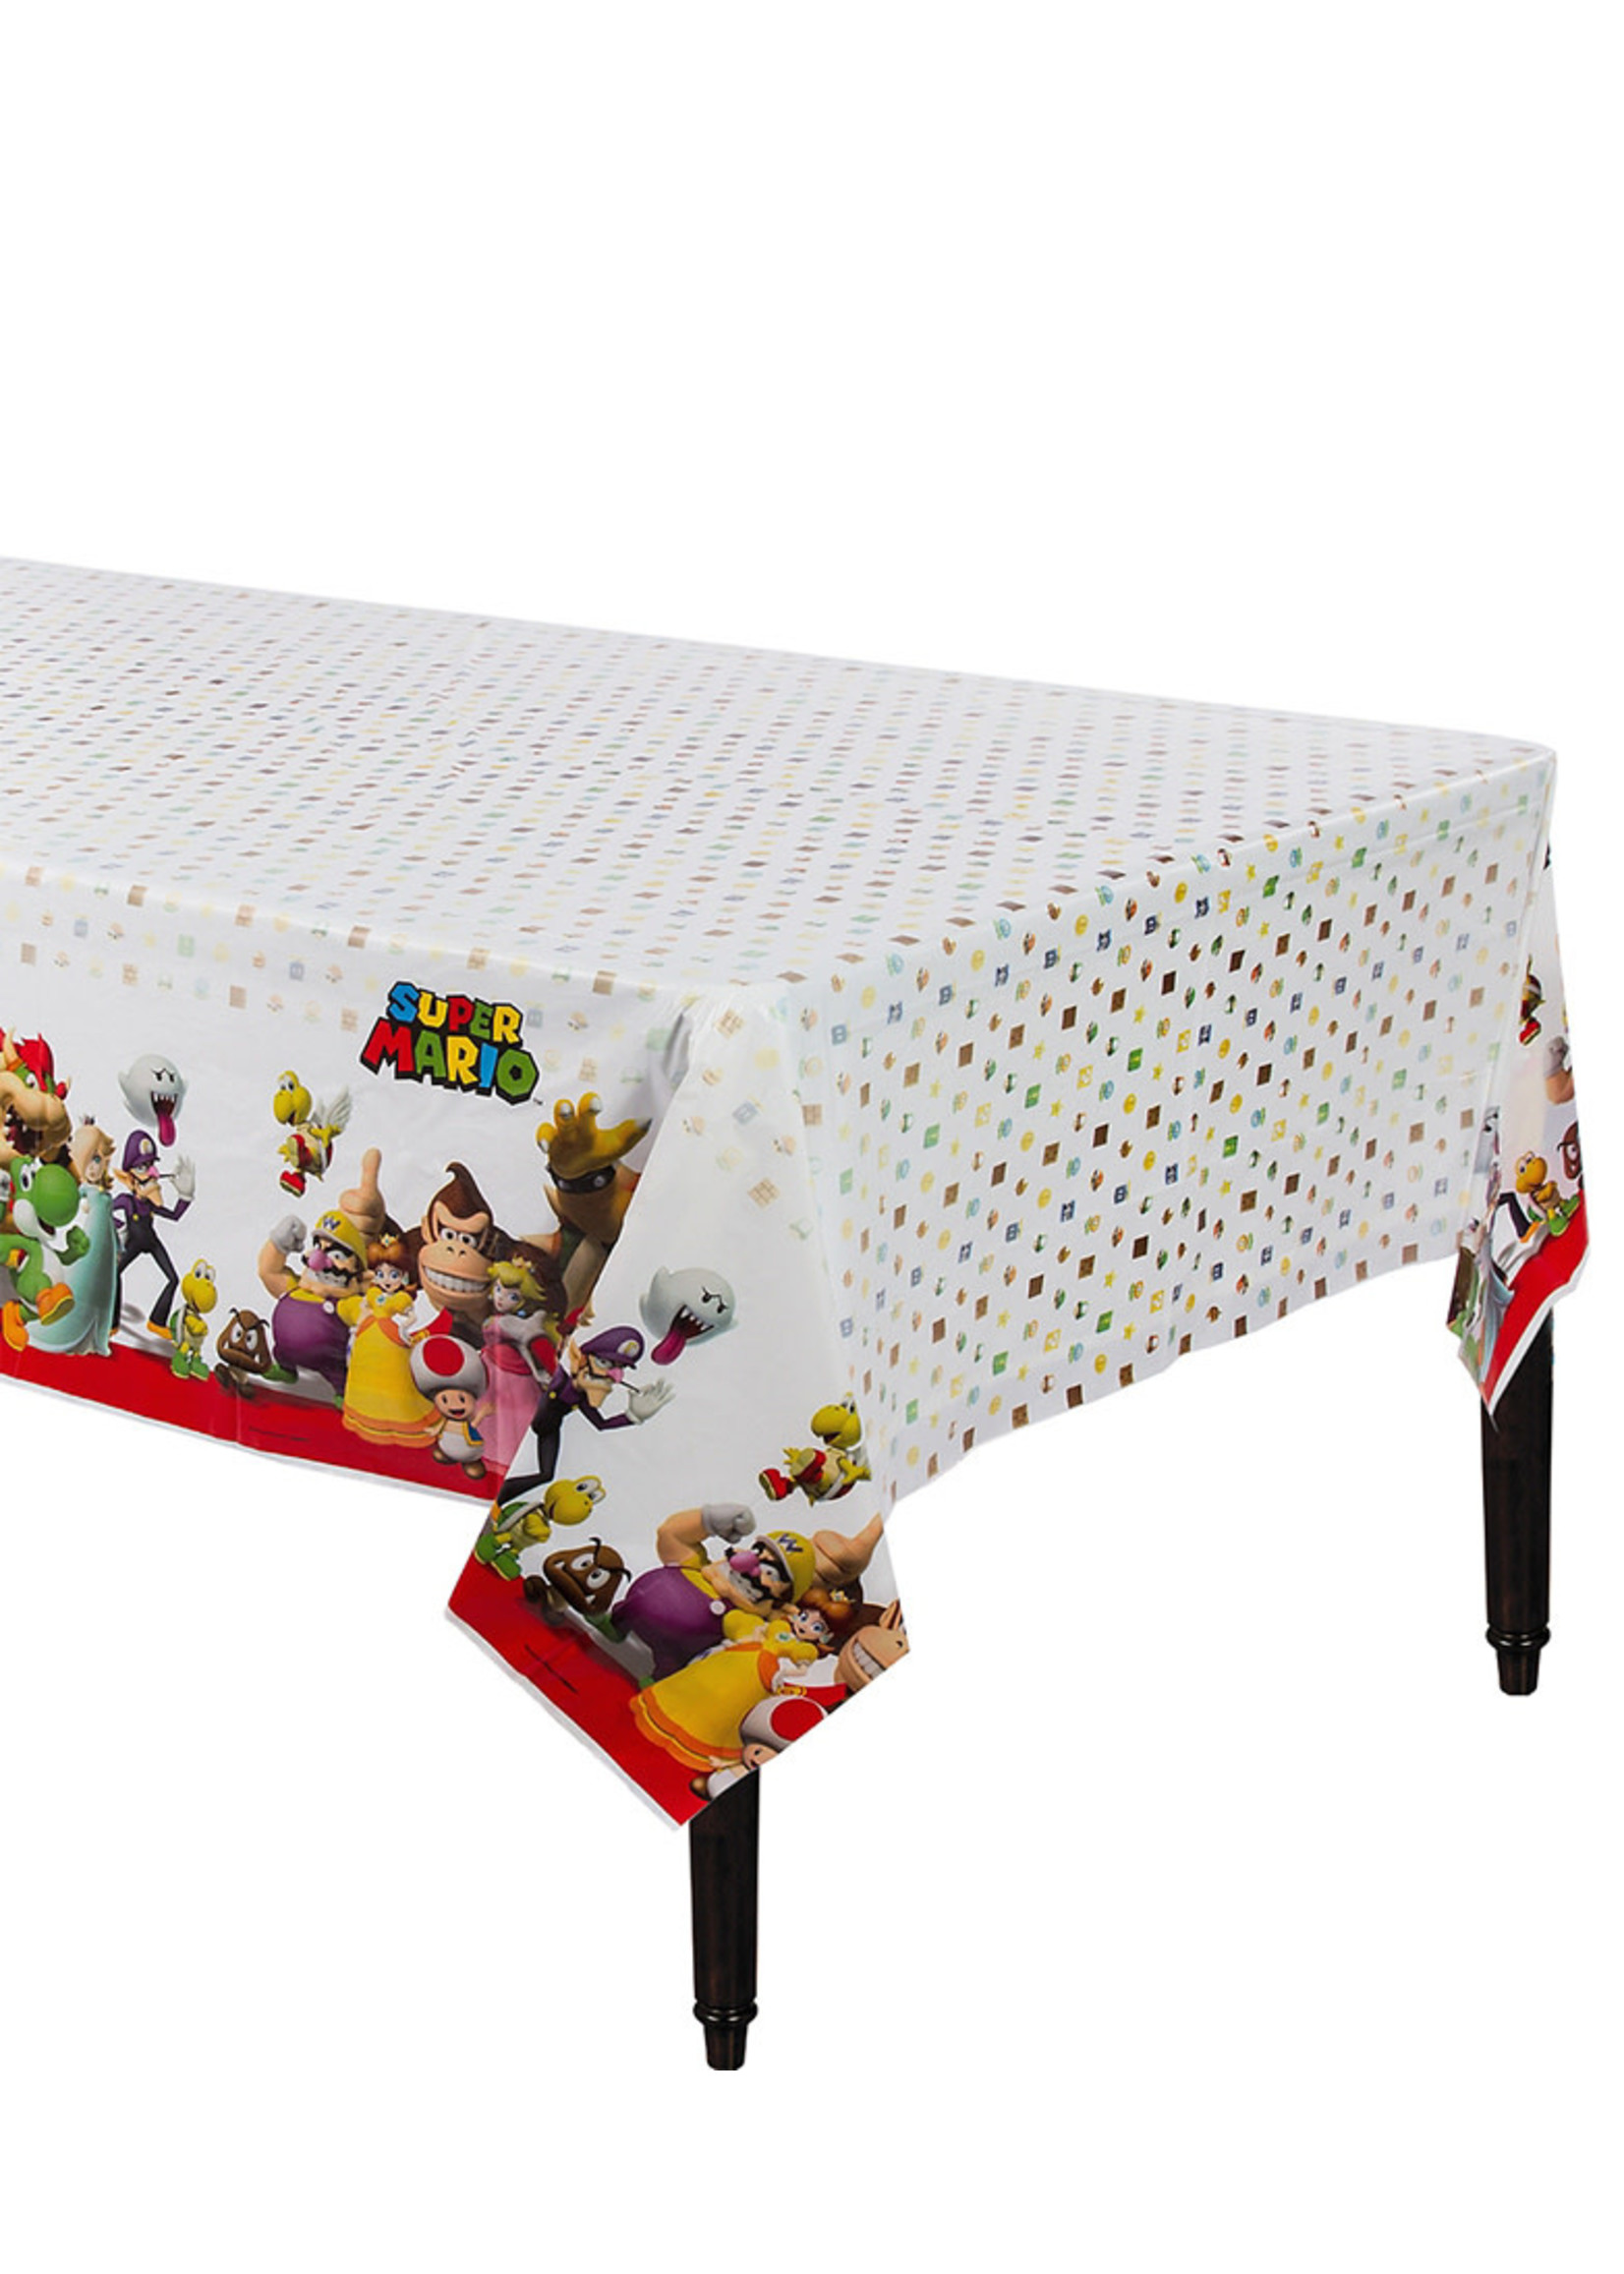 Super Mario Table Cover